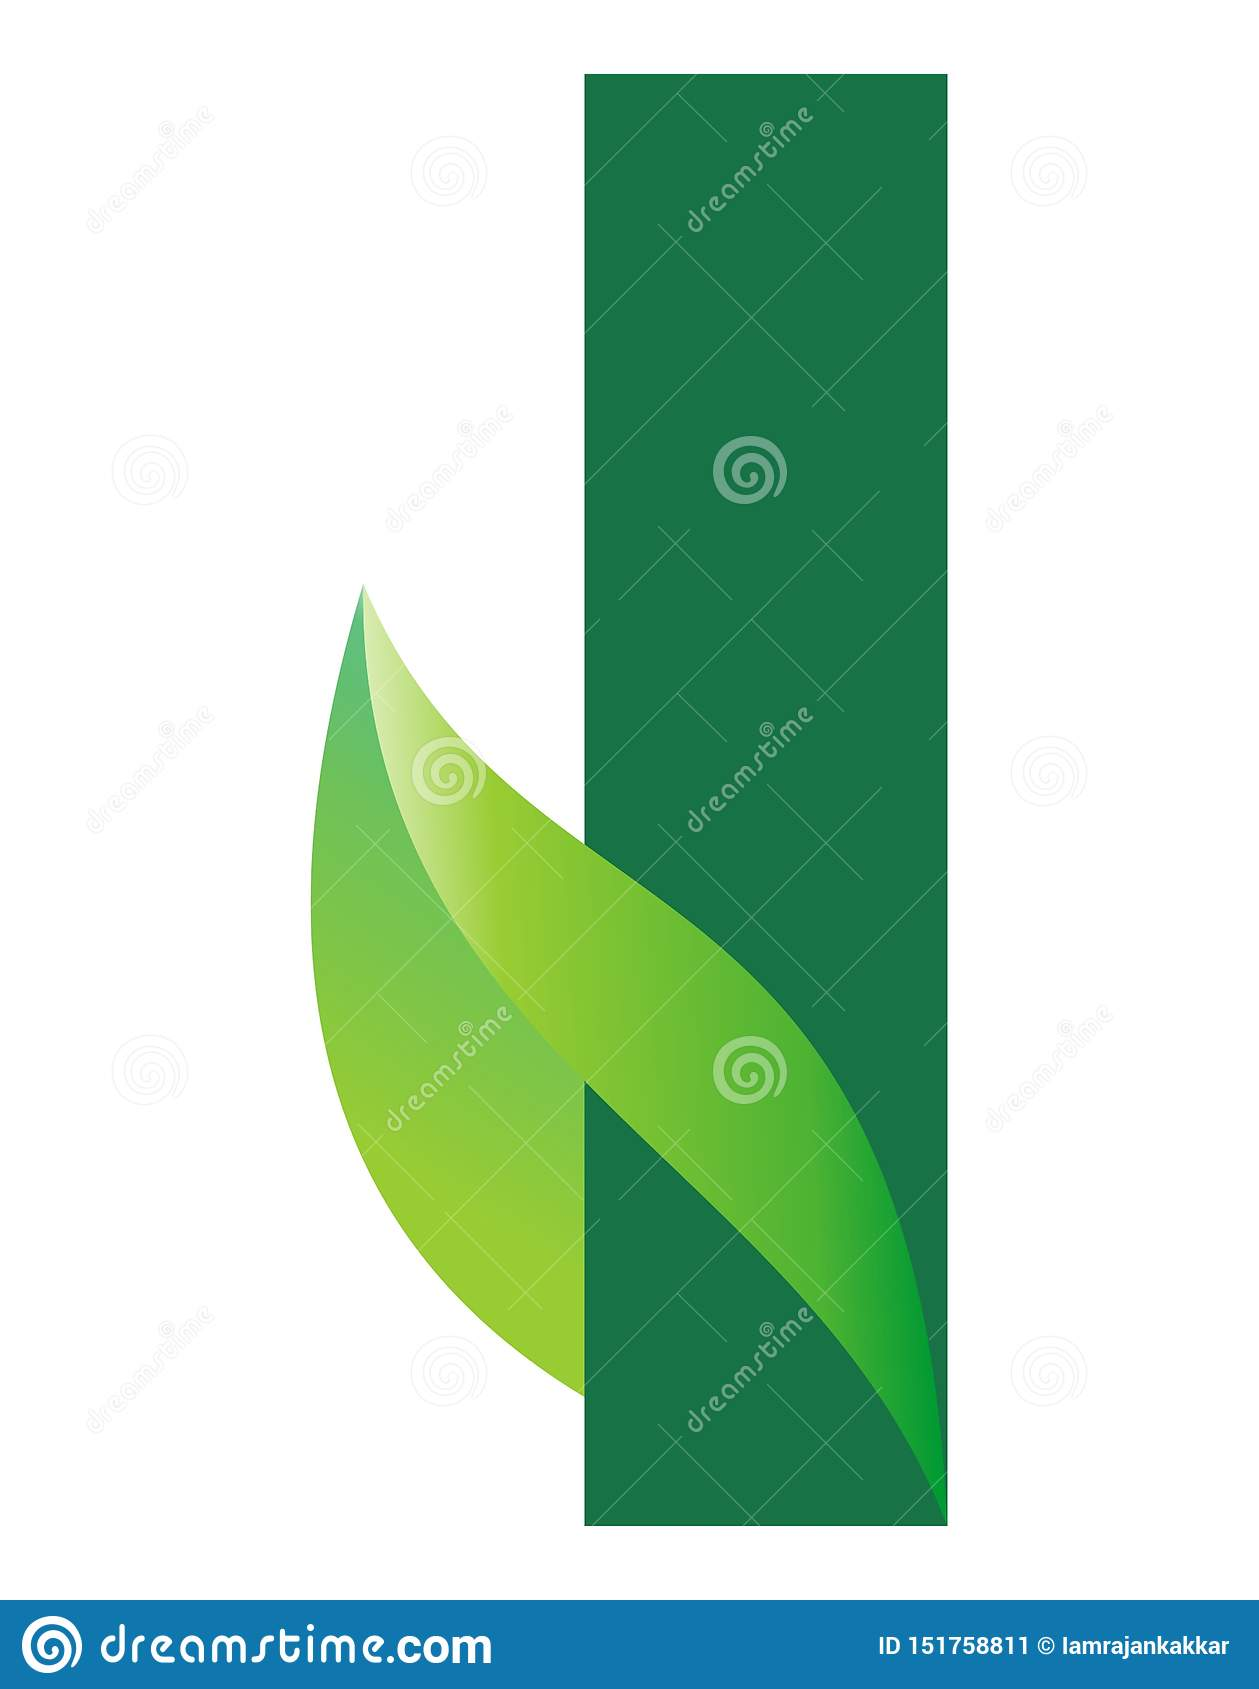 Alphabetic green color logo design for a herbal product company and for plant nursery business